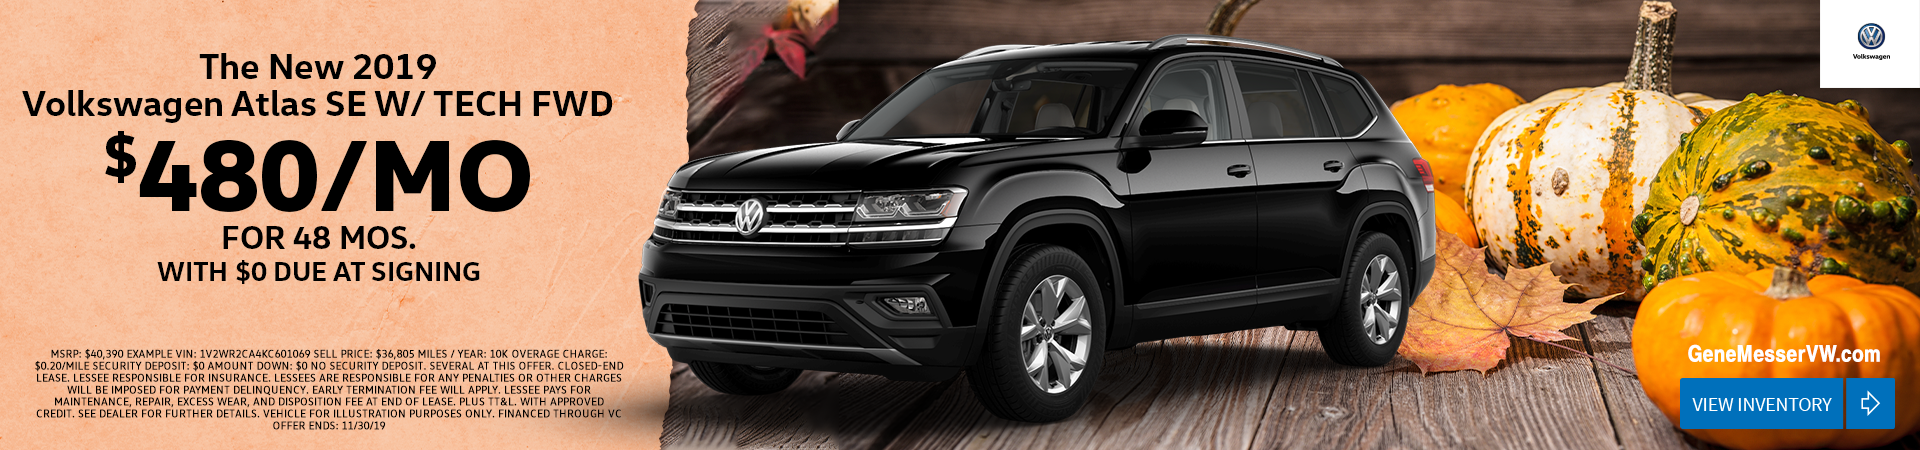 Lease the 2019 Atlas SE W/ TECH FWD for $480/month for 48 months with $0 due